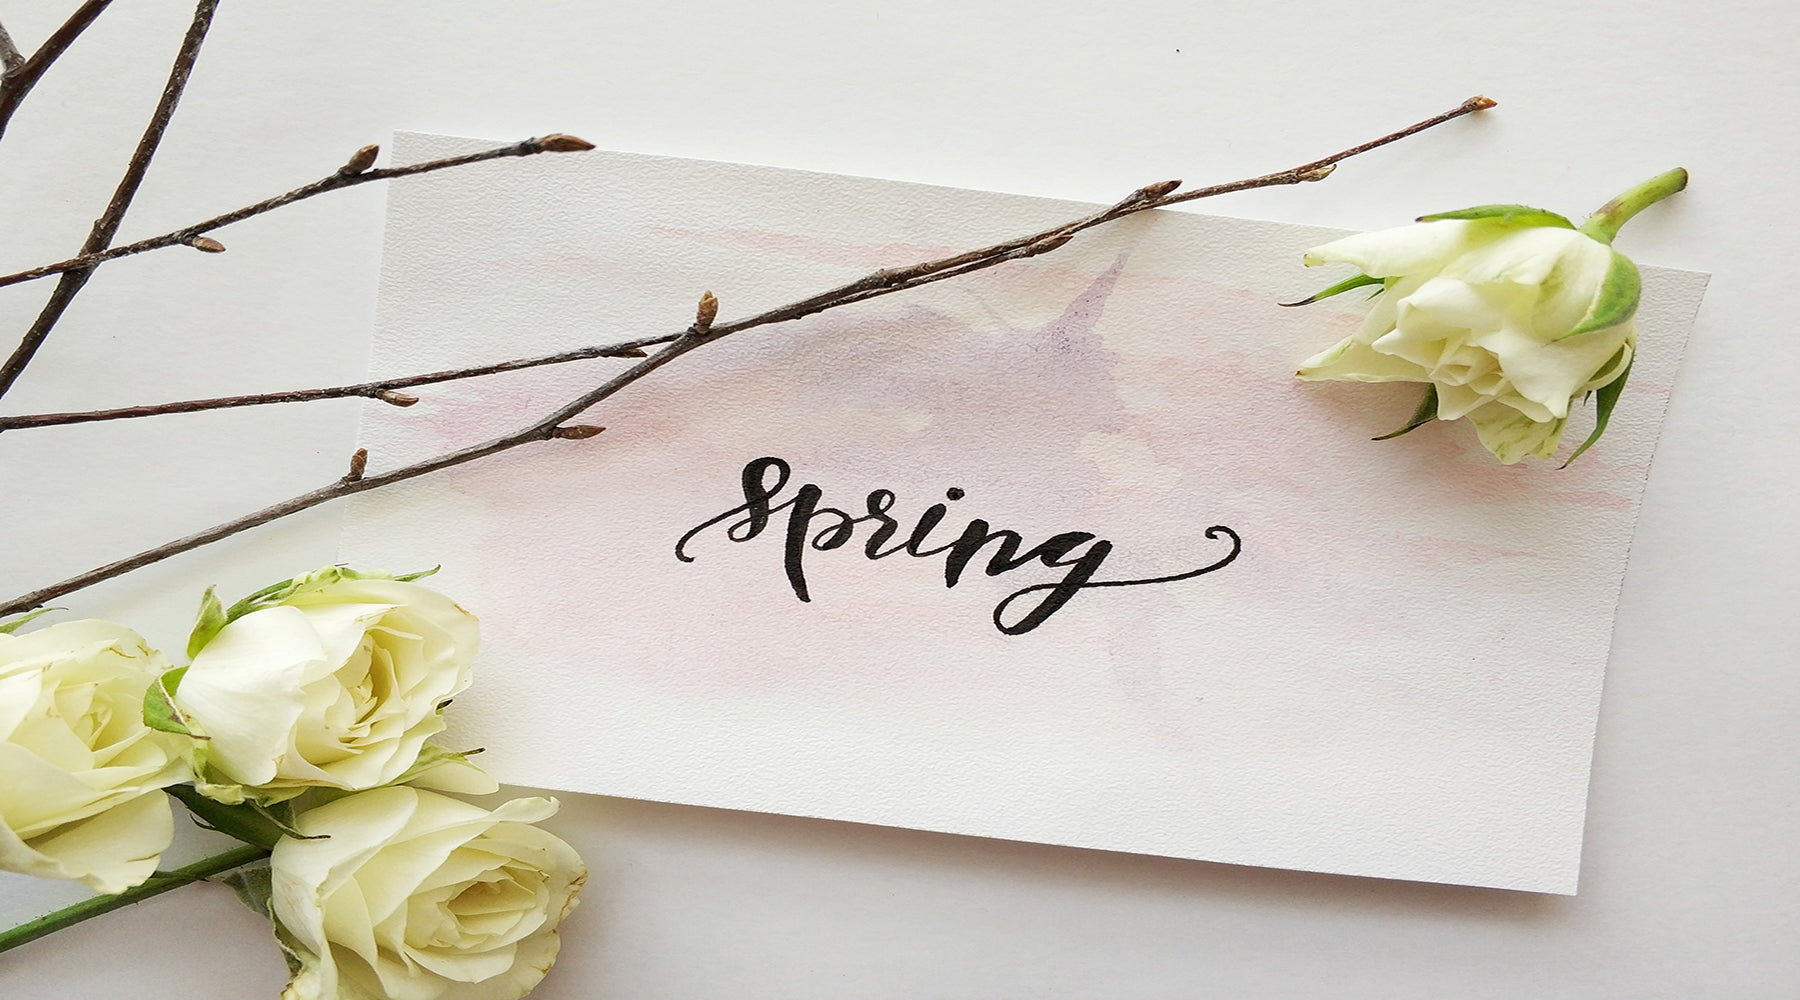 Skincare tips for Spring weather